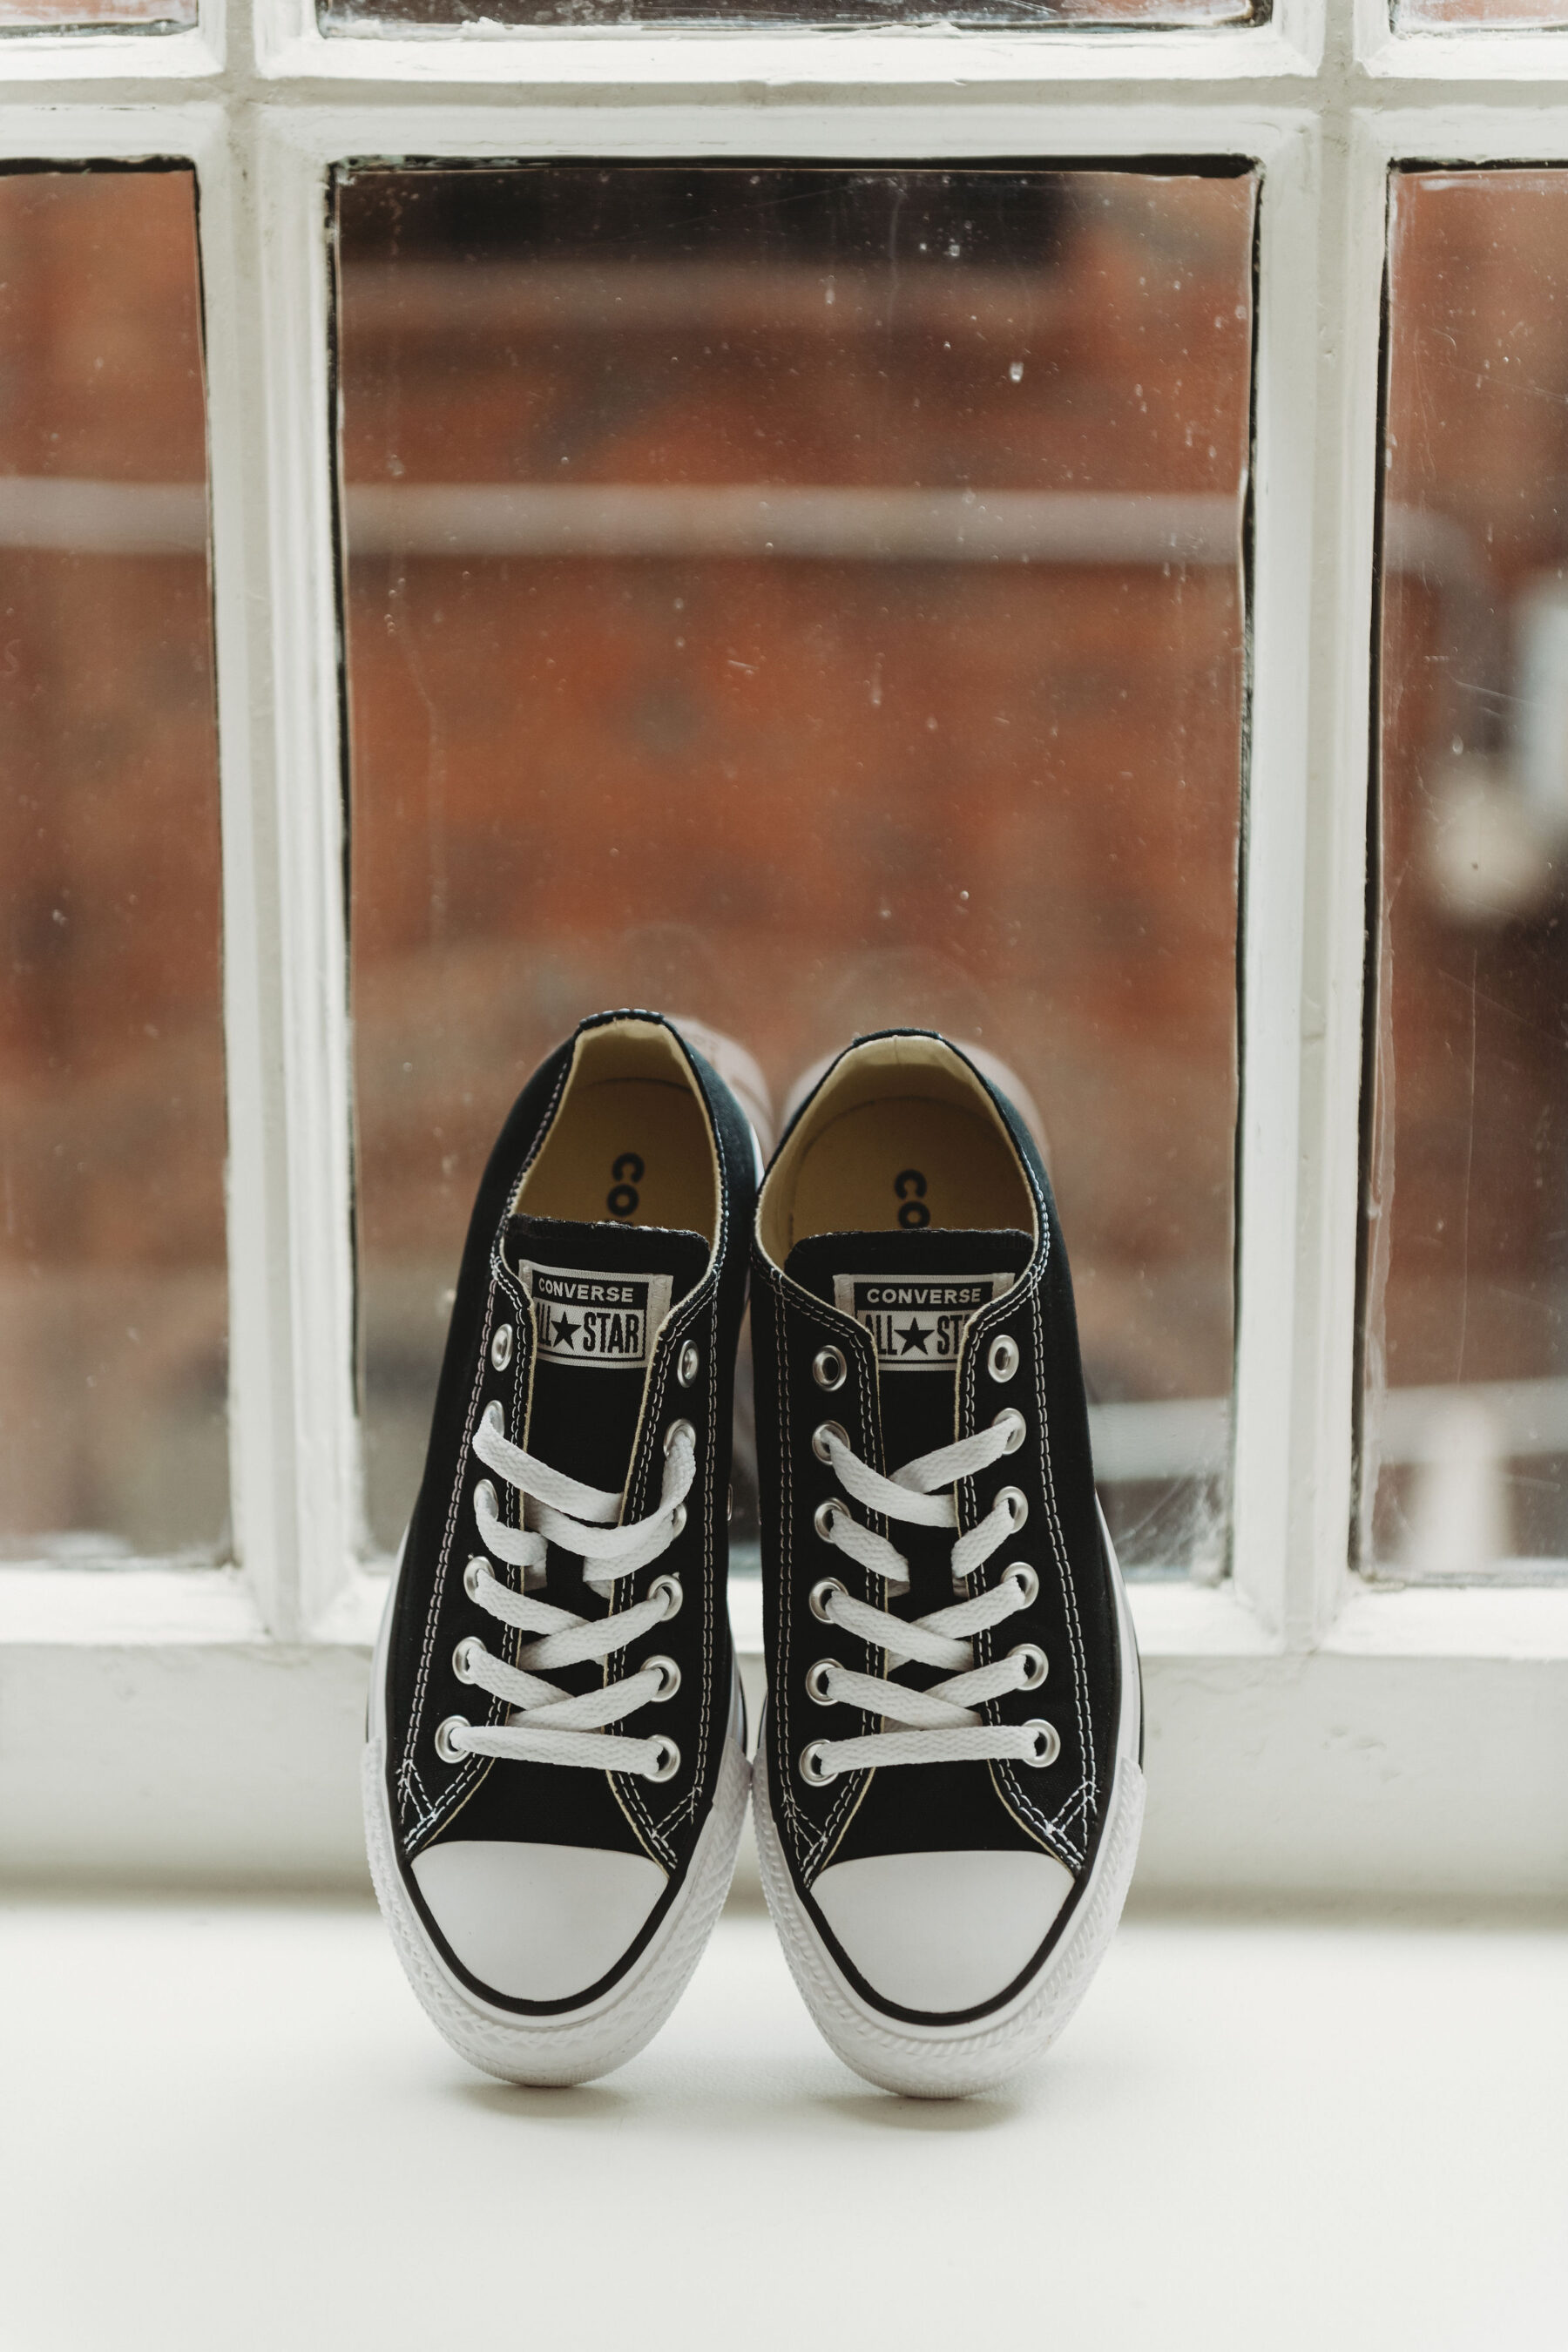 Black converse weddings shoes: Summer Tennessee Wedding at Noelle from Jayde J. Smith Events featured on Nashville Bride Guide